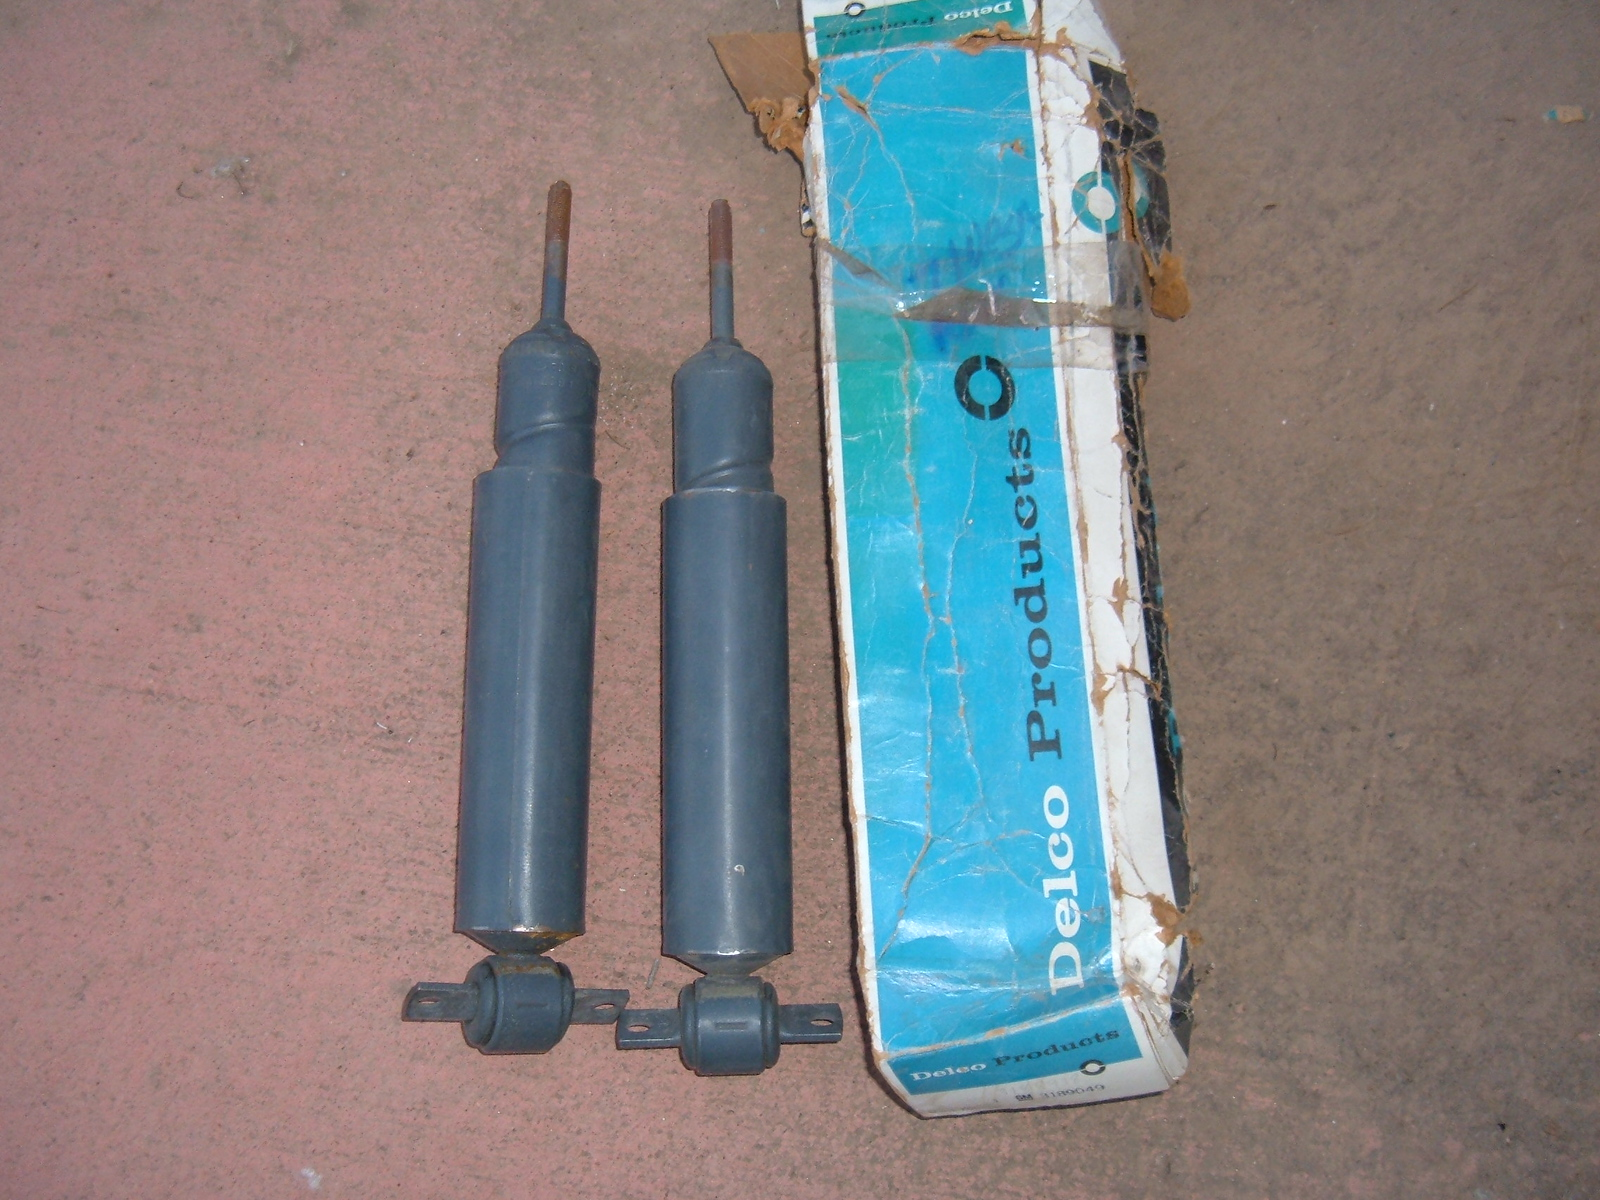 1971 chevrolet vega rear delco spiral shock absorbers nos gm 3189049 (z 3189049)